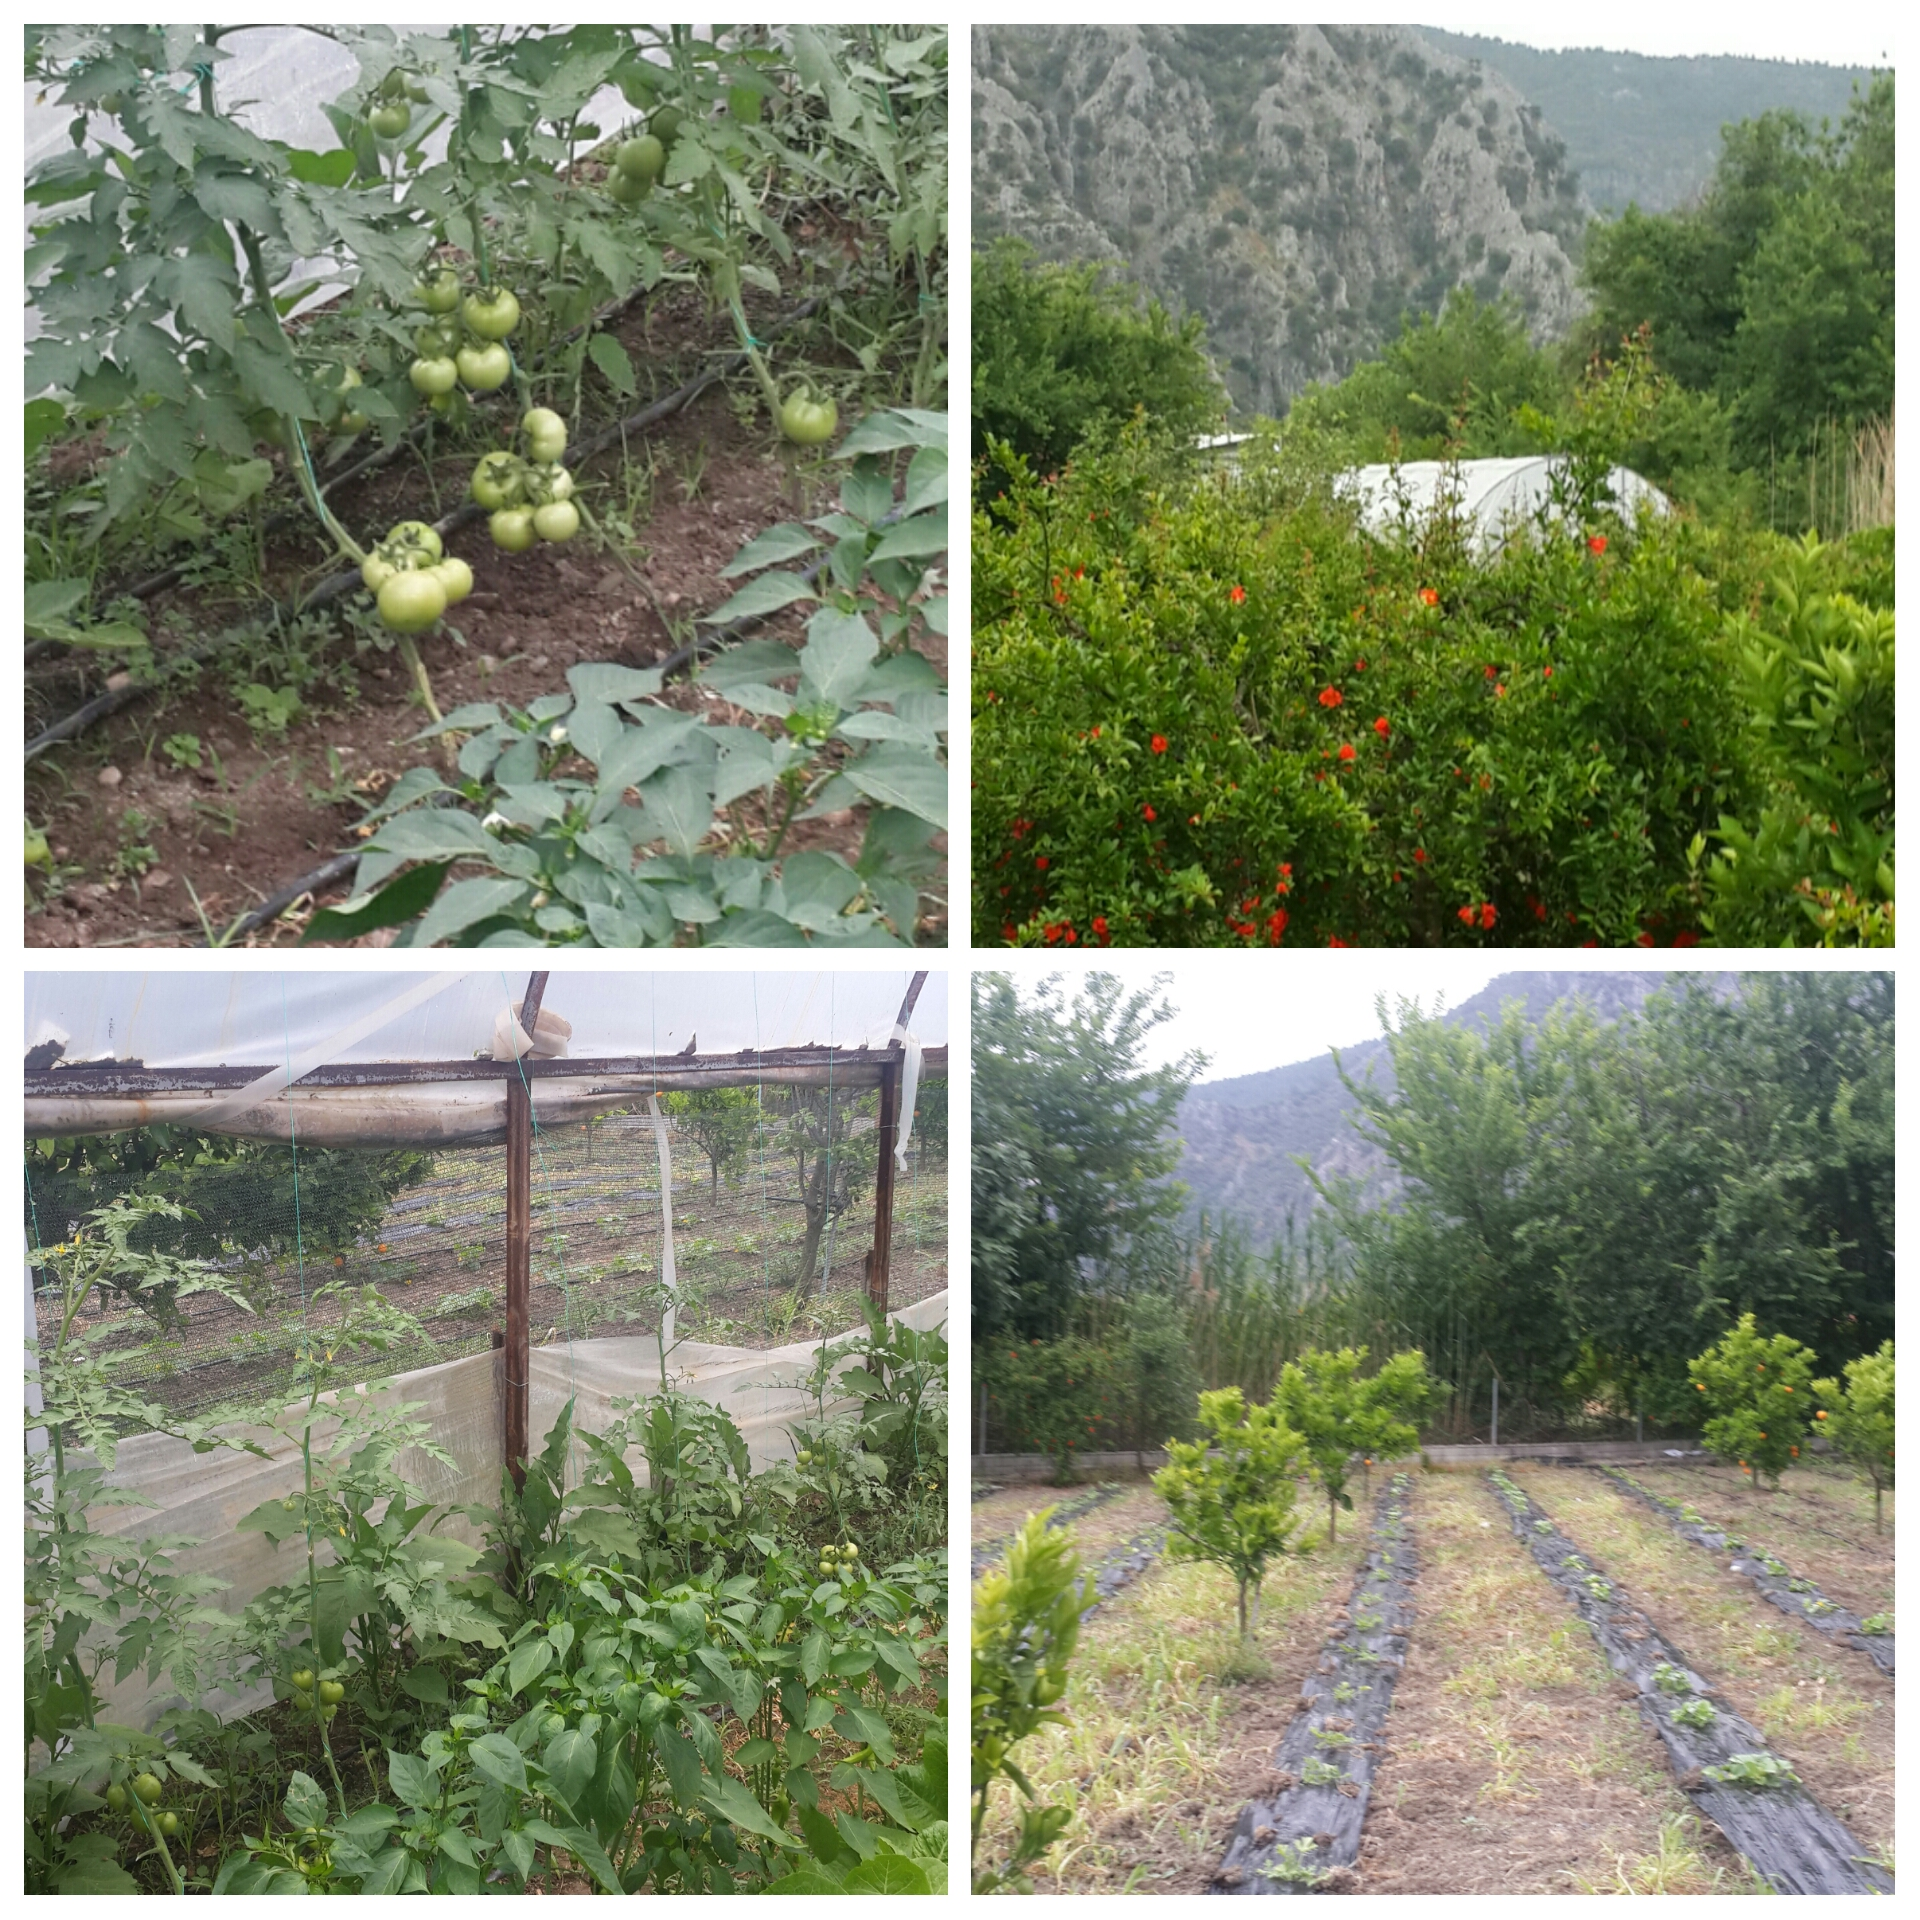 Our organic farm- Organik Ciftlik